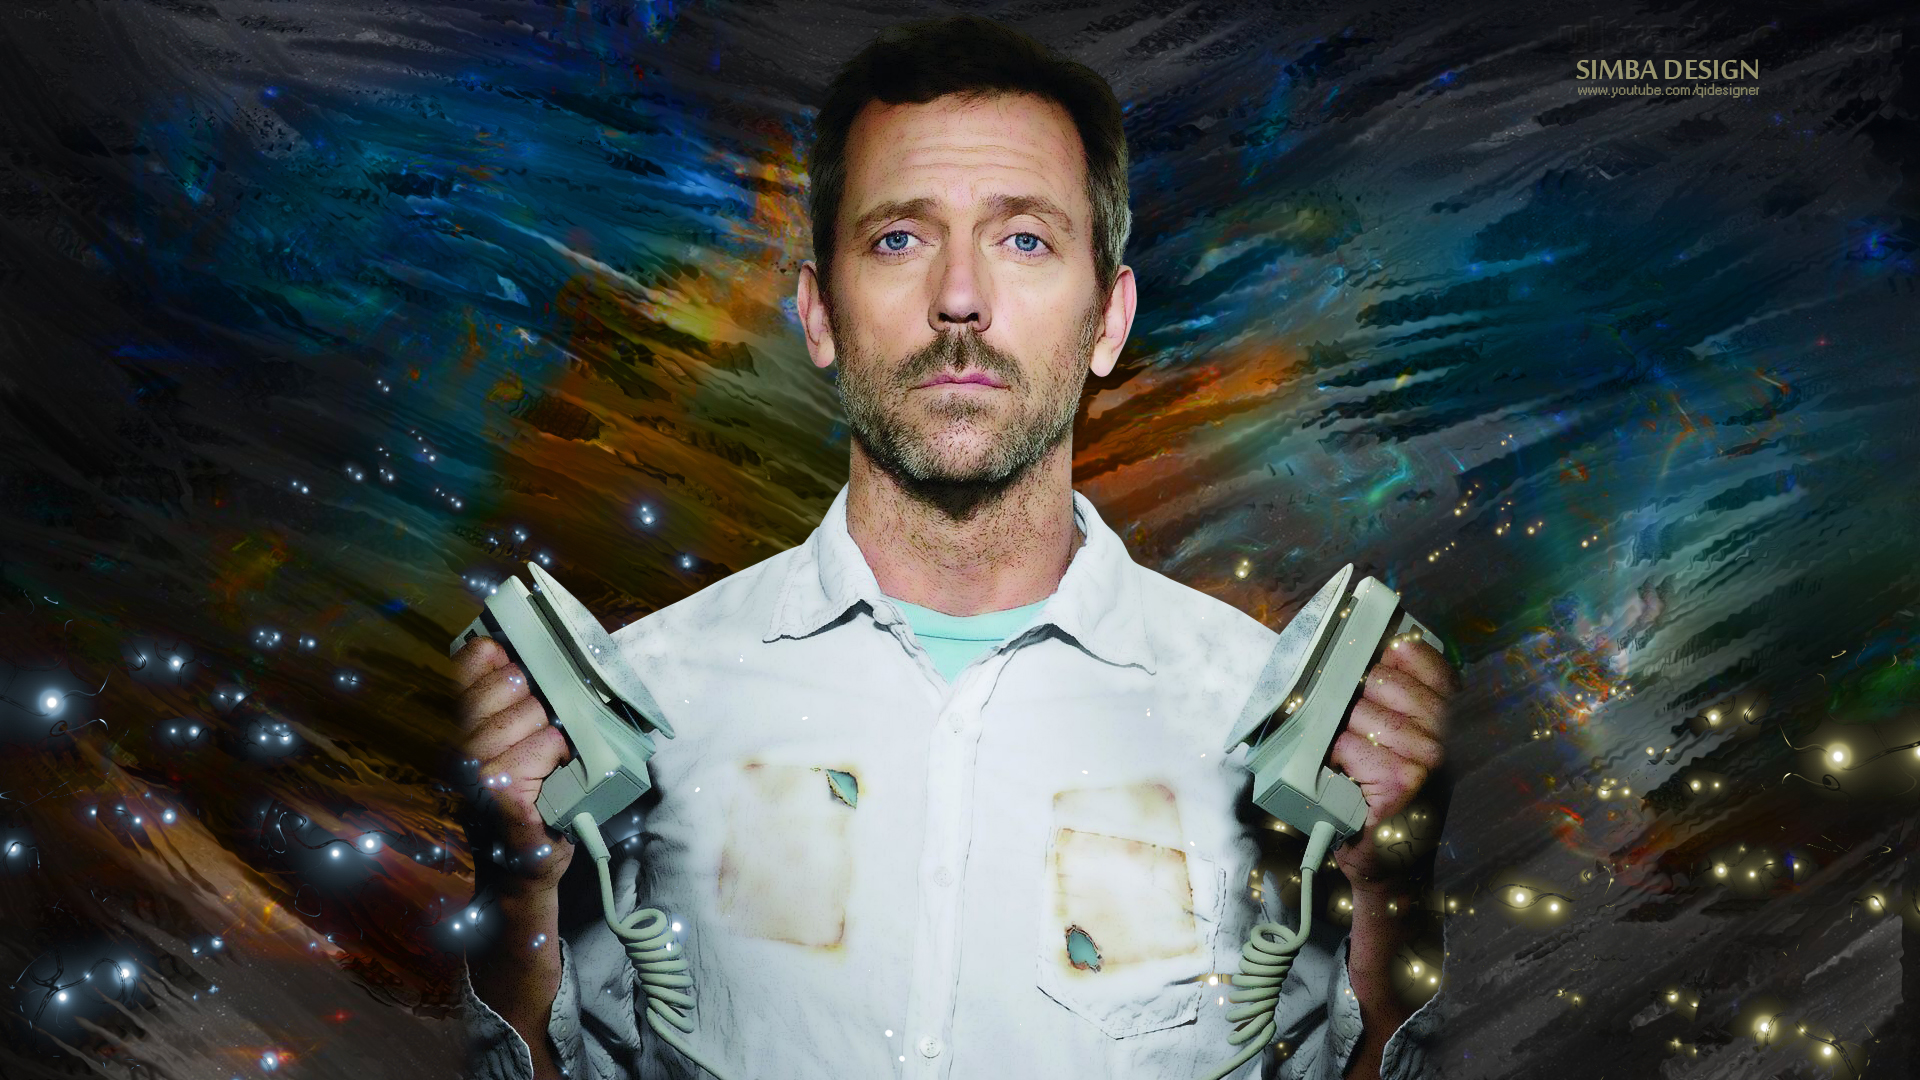 download wallpaper dr house - photo #26